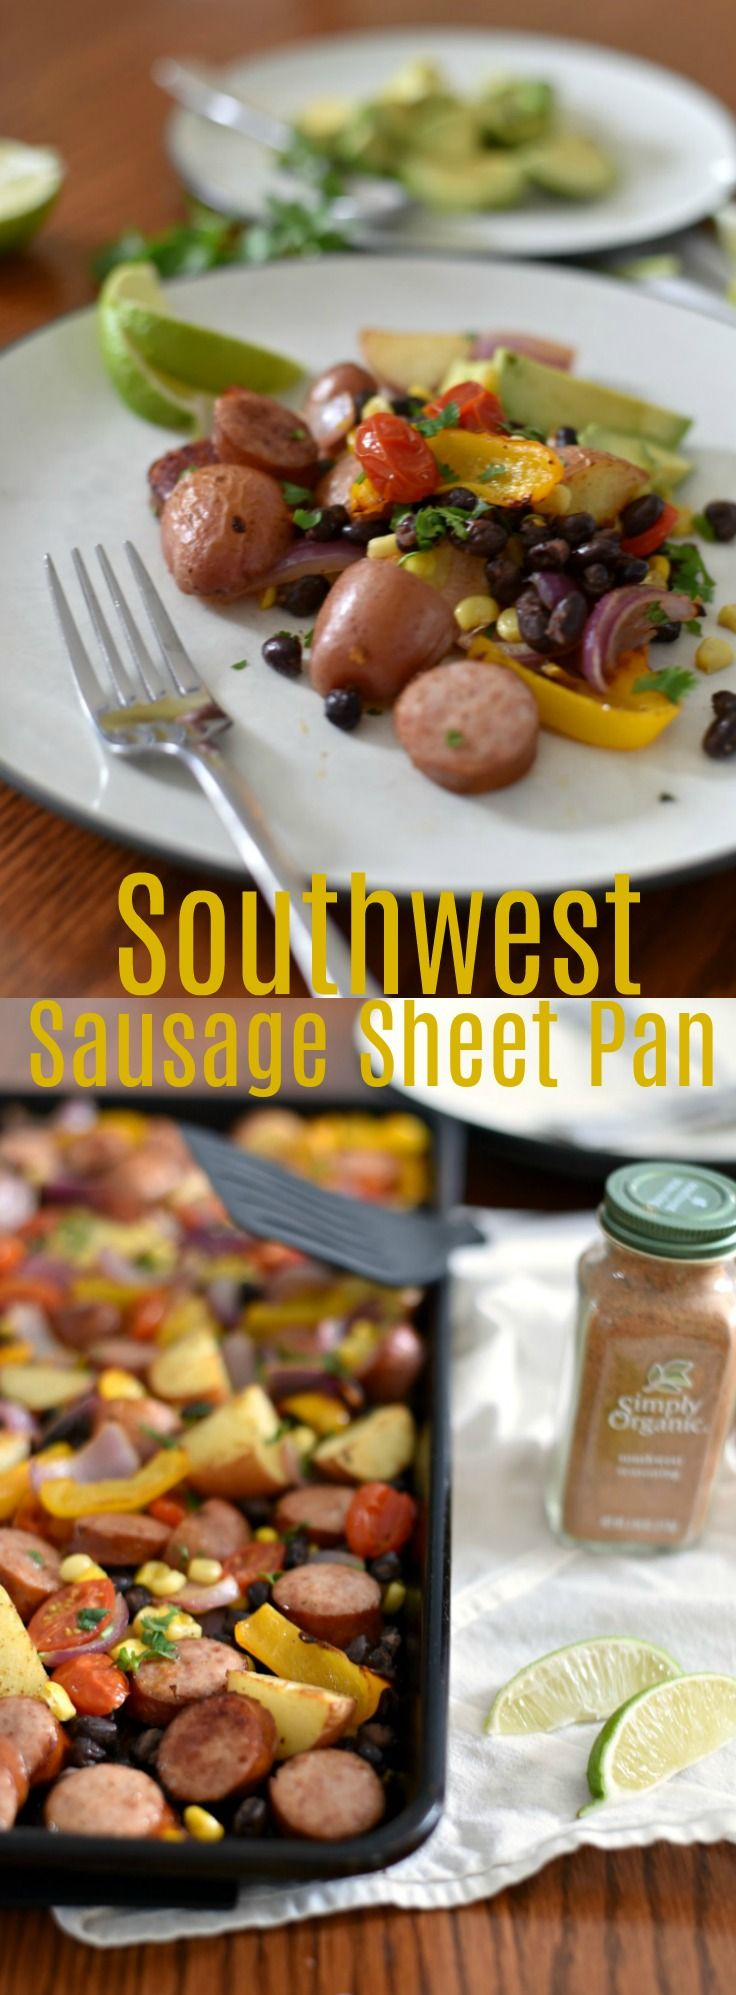 This easy sheet pan meal takes less than 30 minutes and is studded with fantastic southwest flavors! Sheet Pan Recipe, Southwest Seasoning, 30 Minute Recipe, Sausage Recipe, Kielbasa Recipe, Family Meal, Easy Recipe via @GingeredWhisk